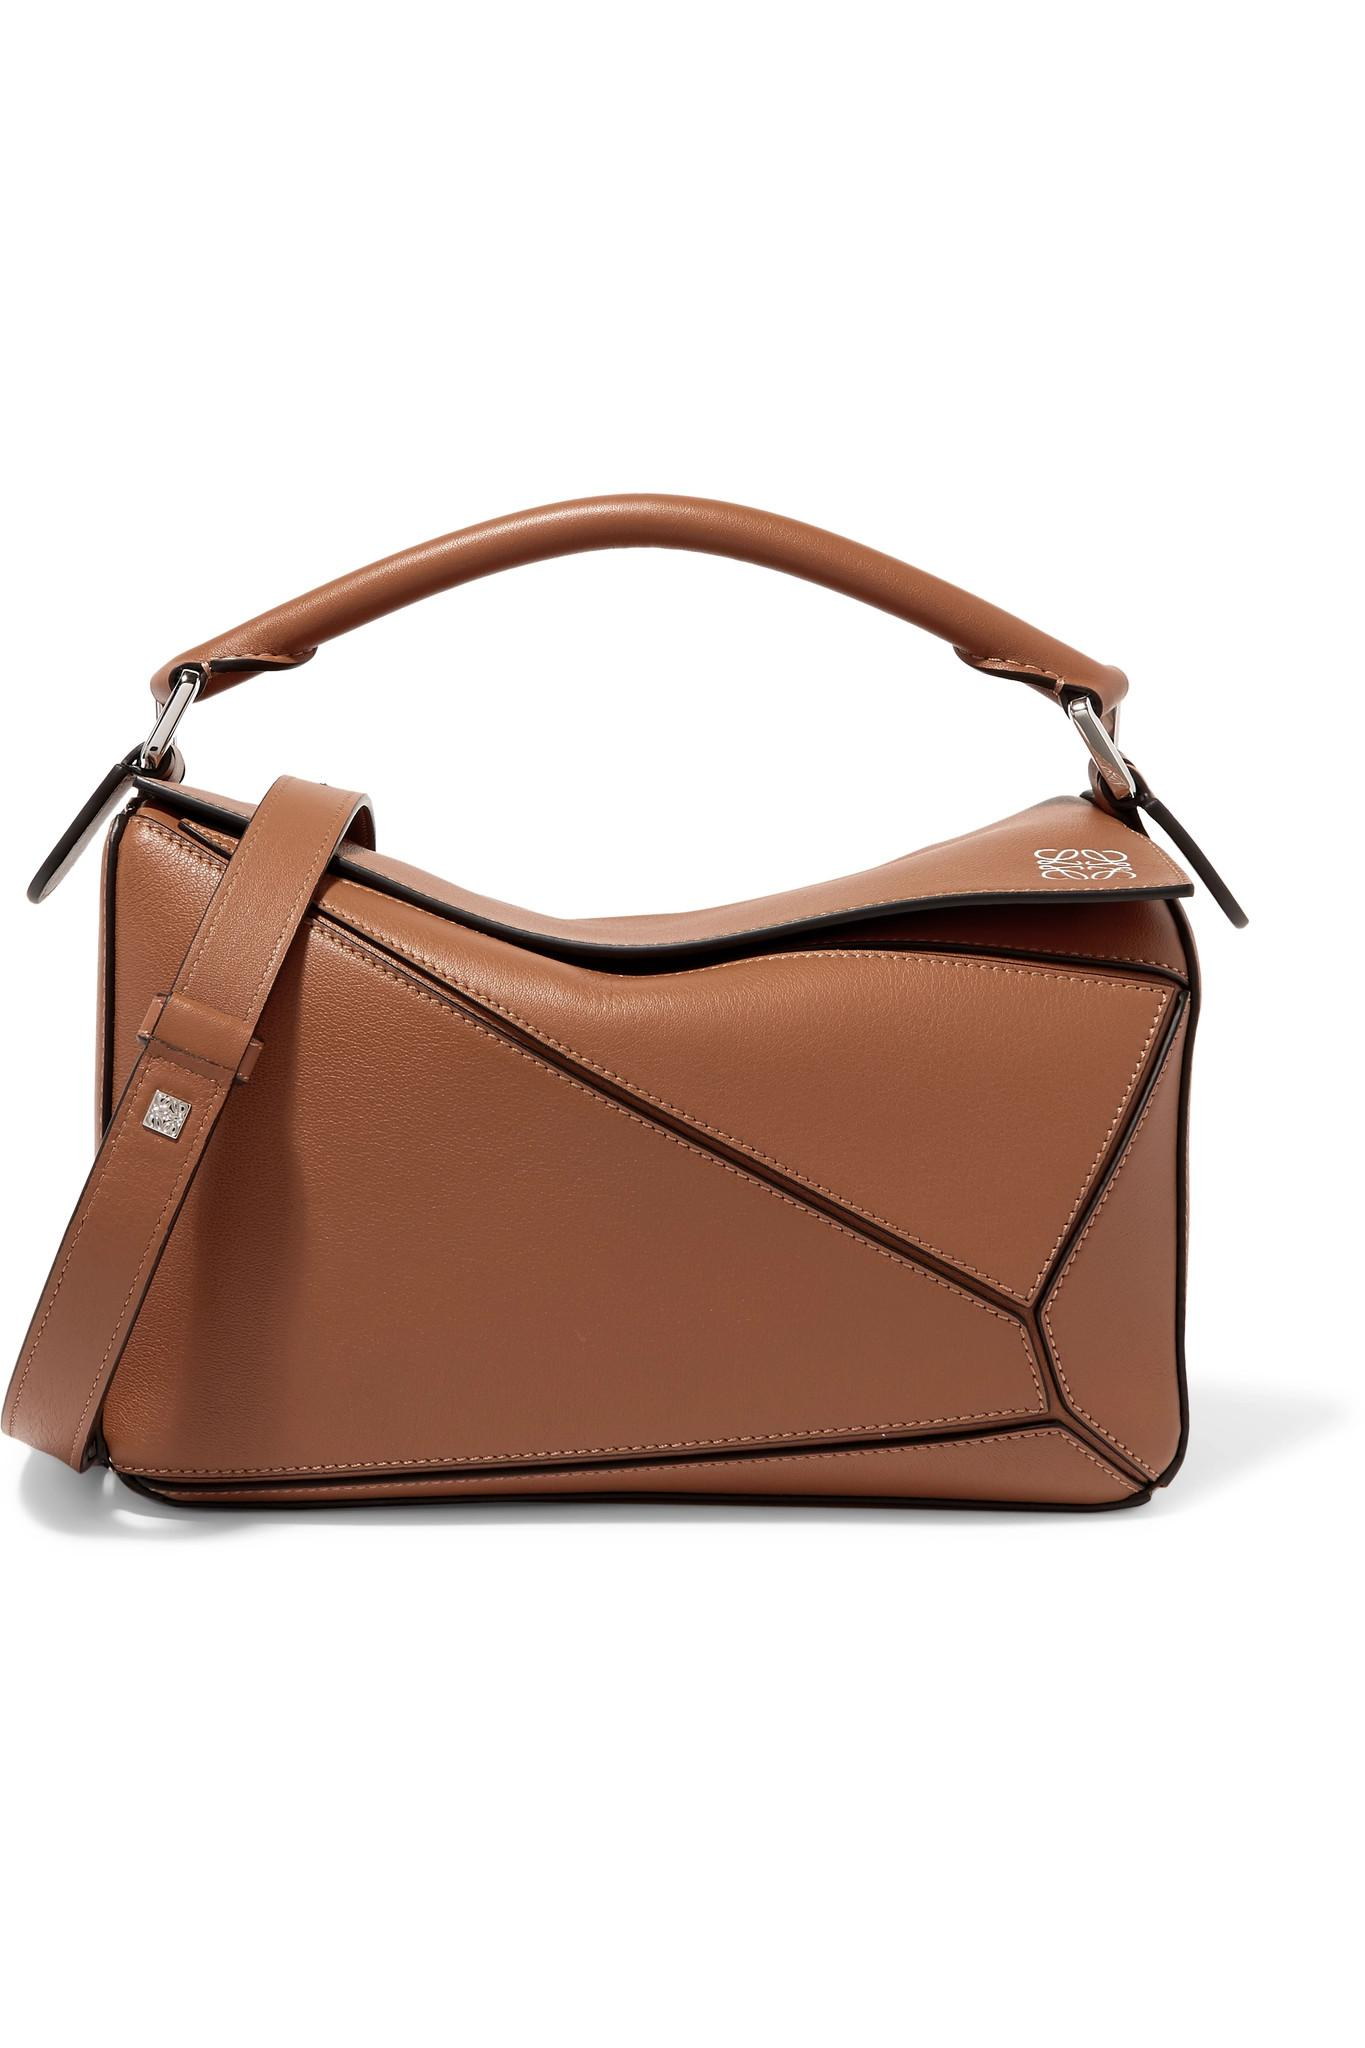 a927e10219b Lyst - Loewe Puzzle Small Textured-leather Shoulder Bag in Brown